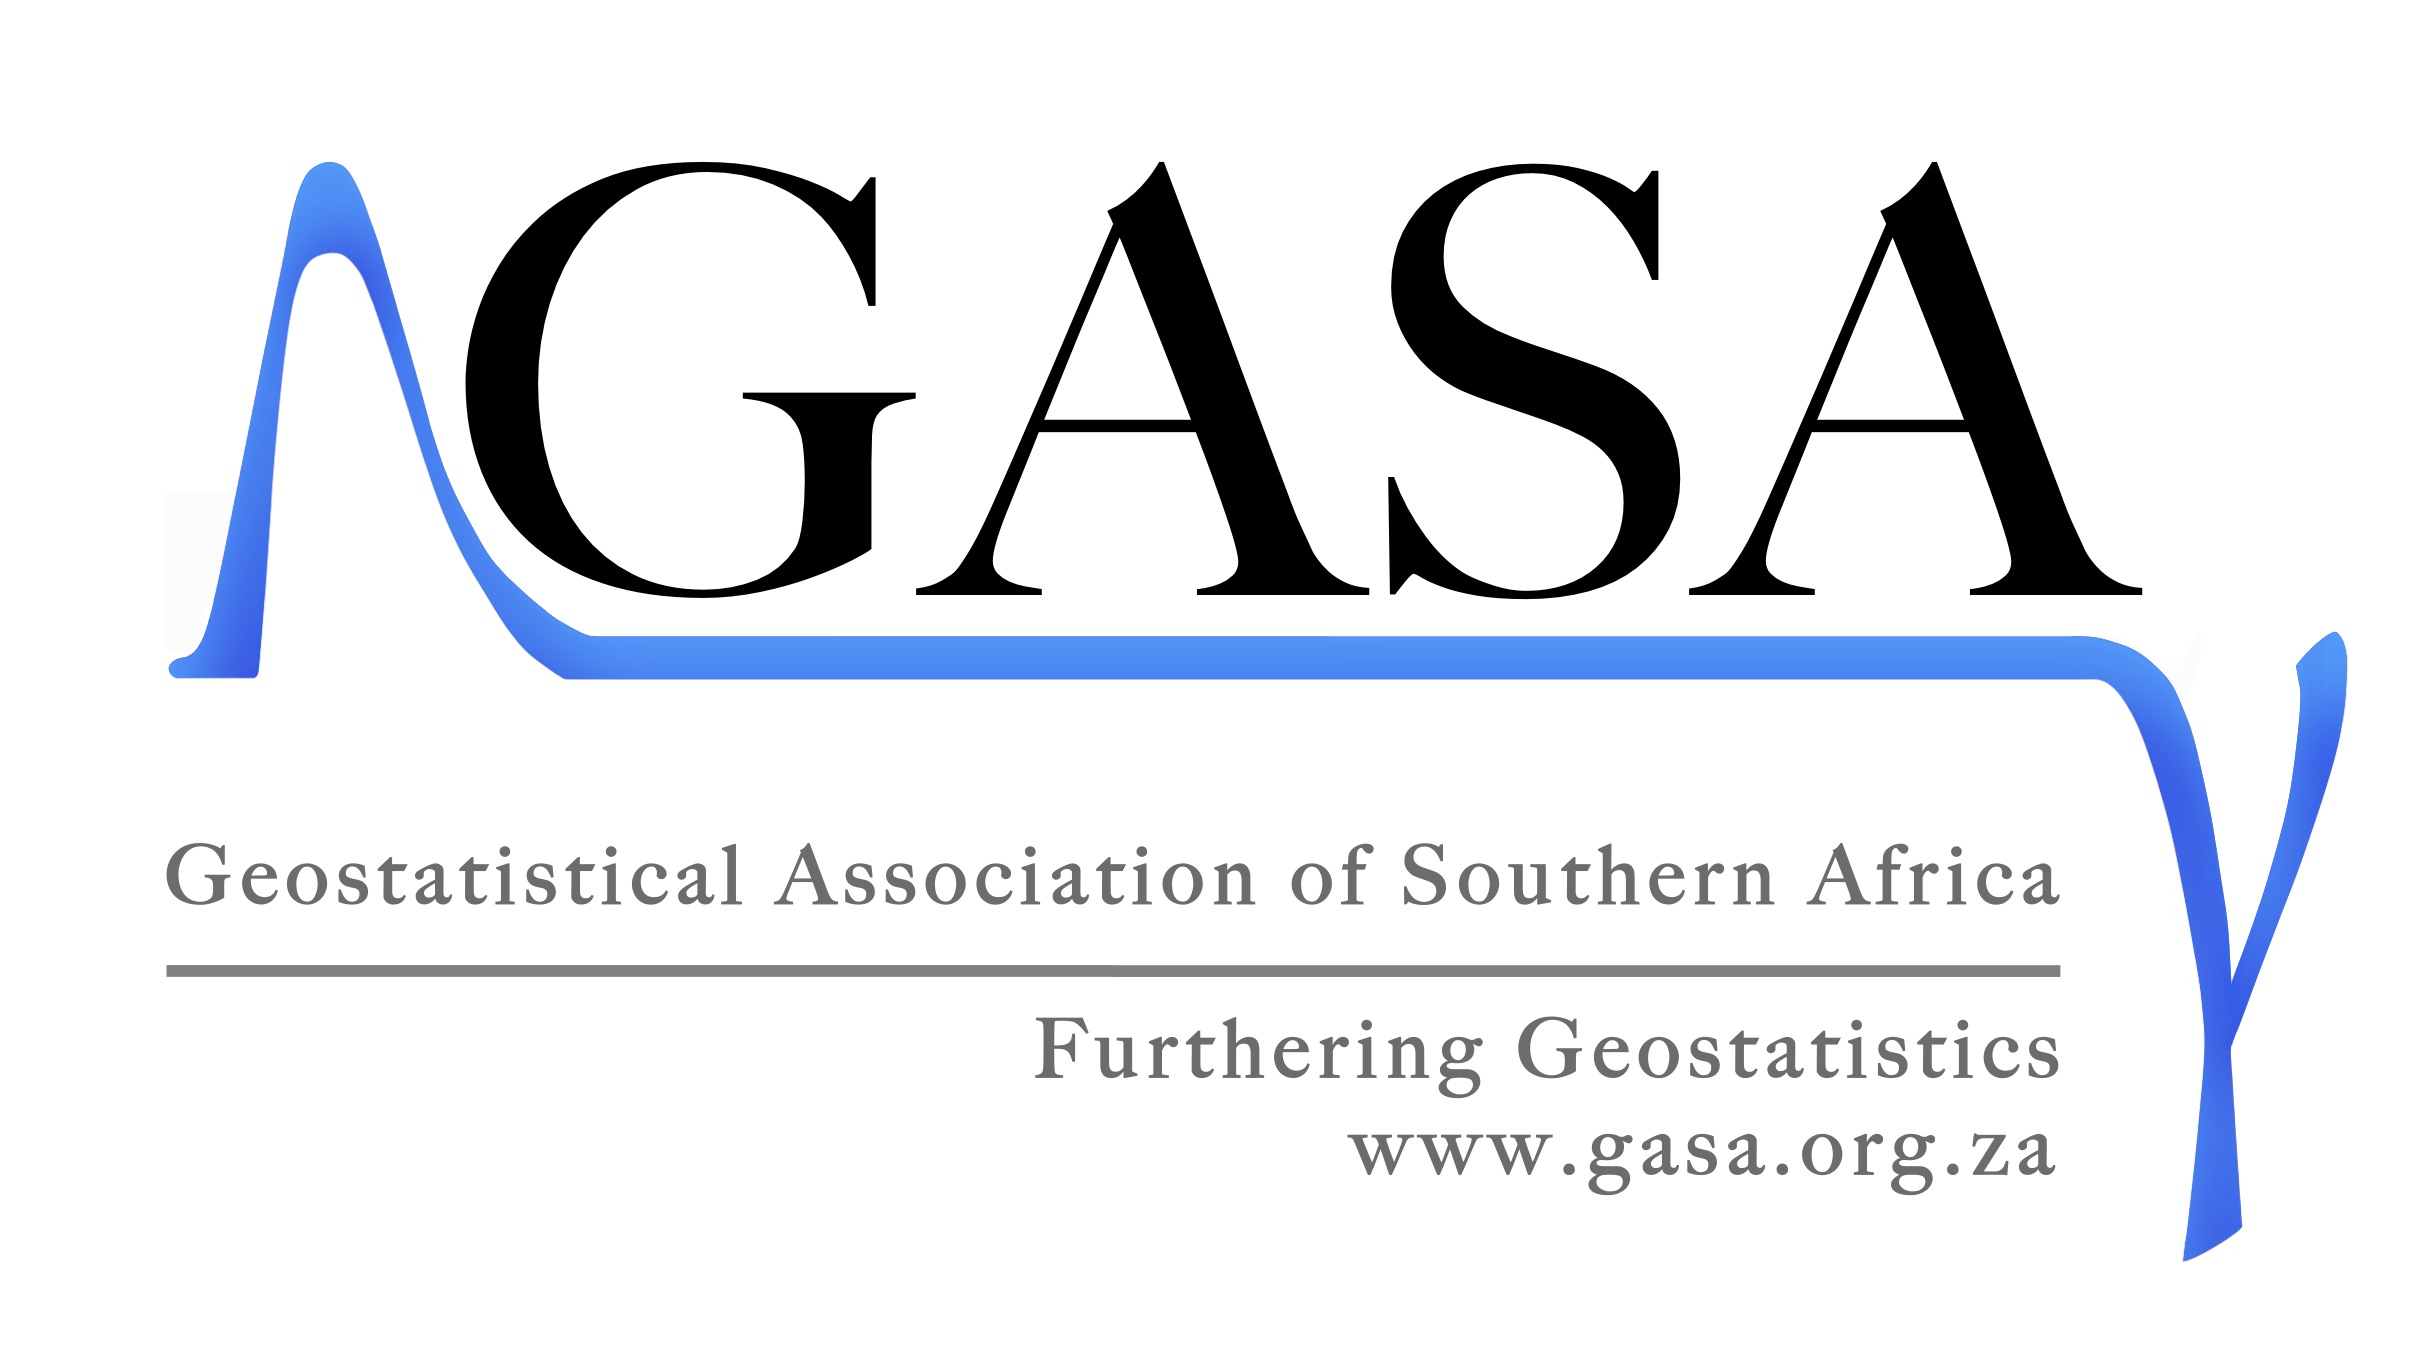 GASA logo with website